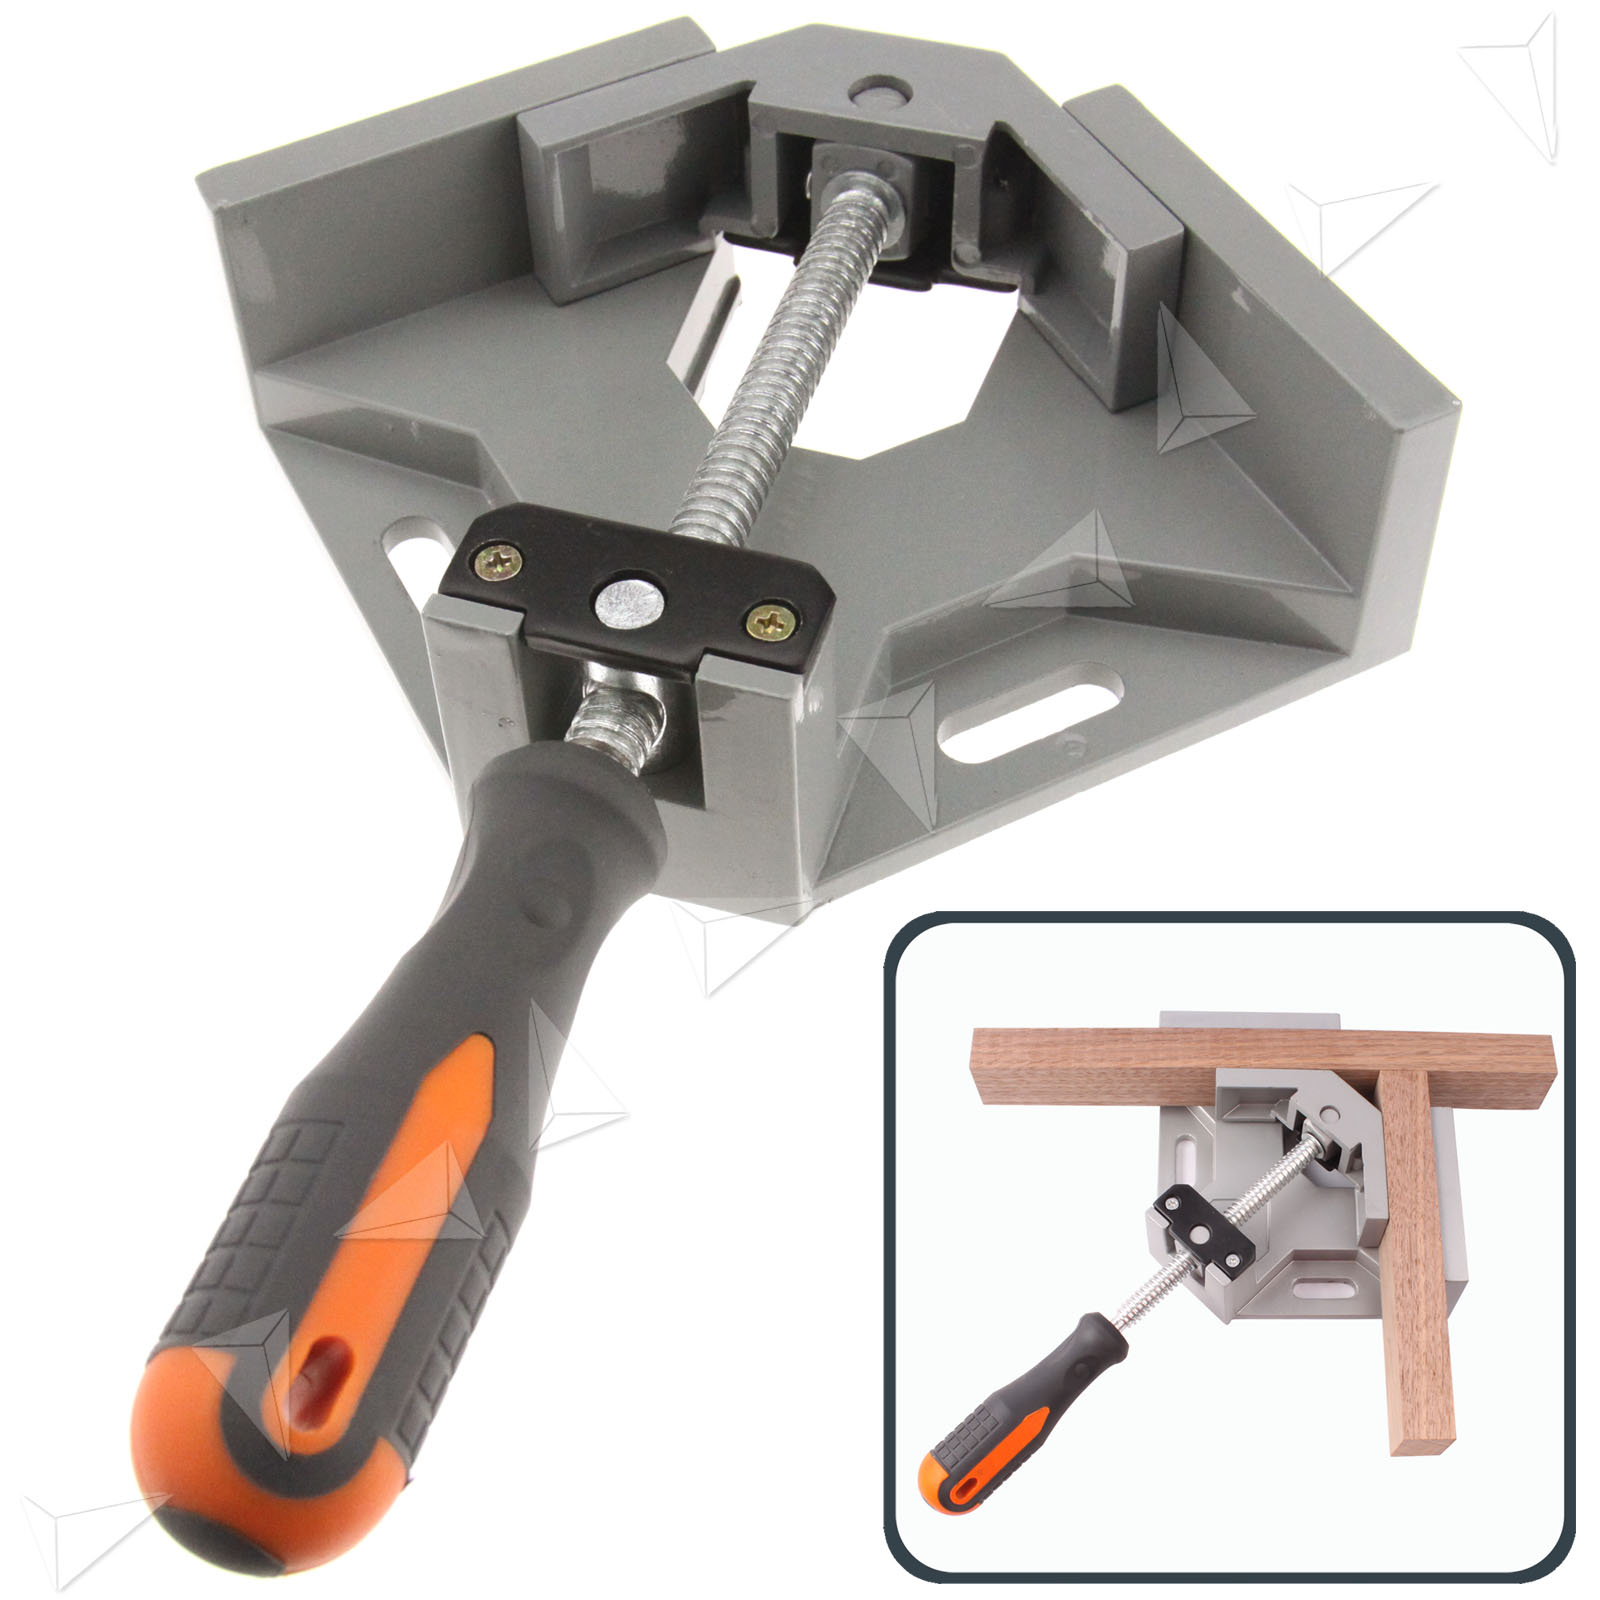 90 176 Right Angle Clamp Corner Clamp Woodworking Vice Wood